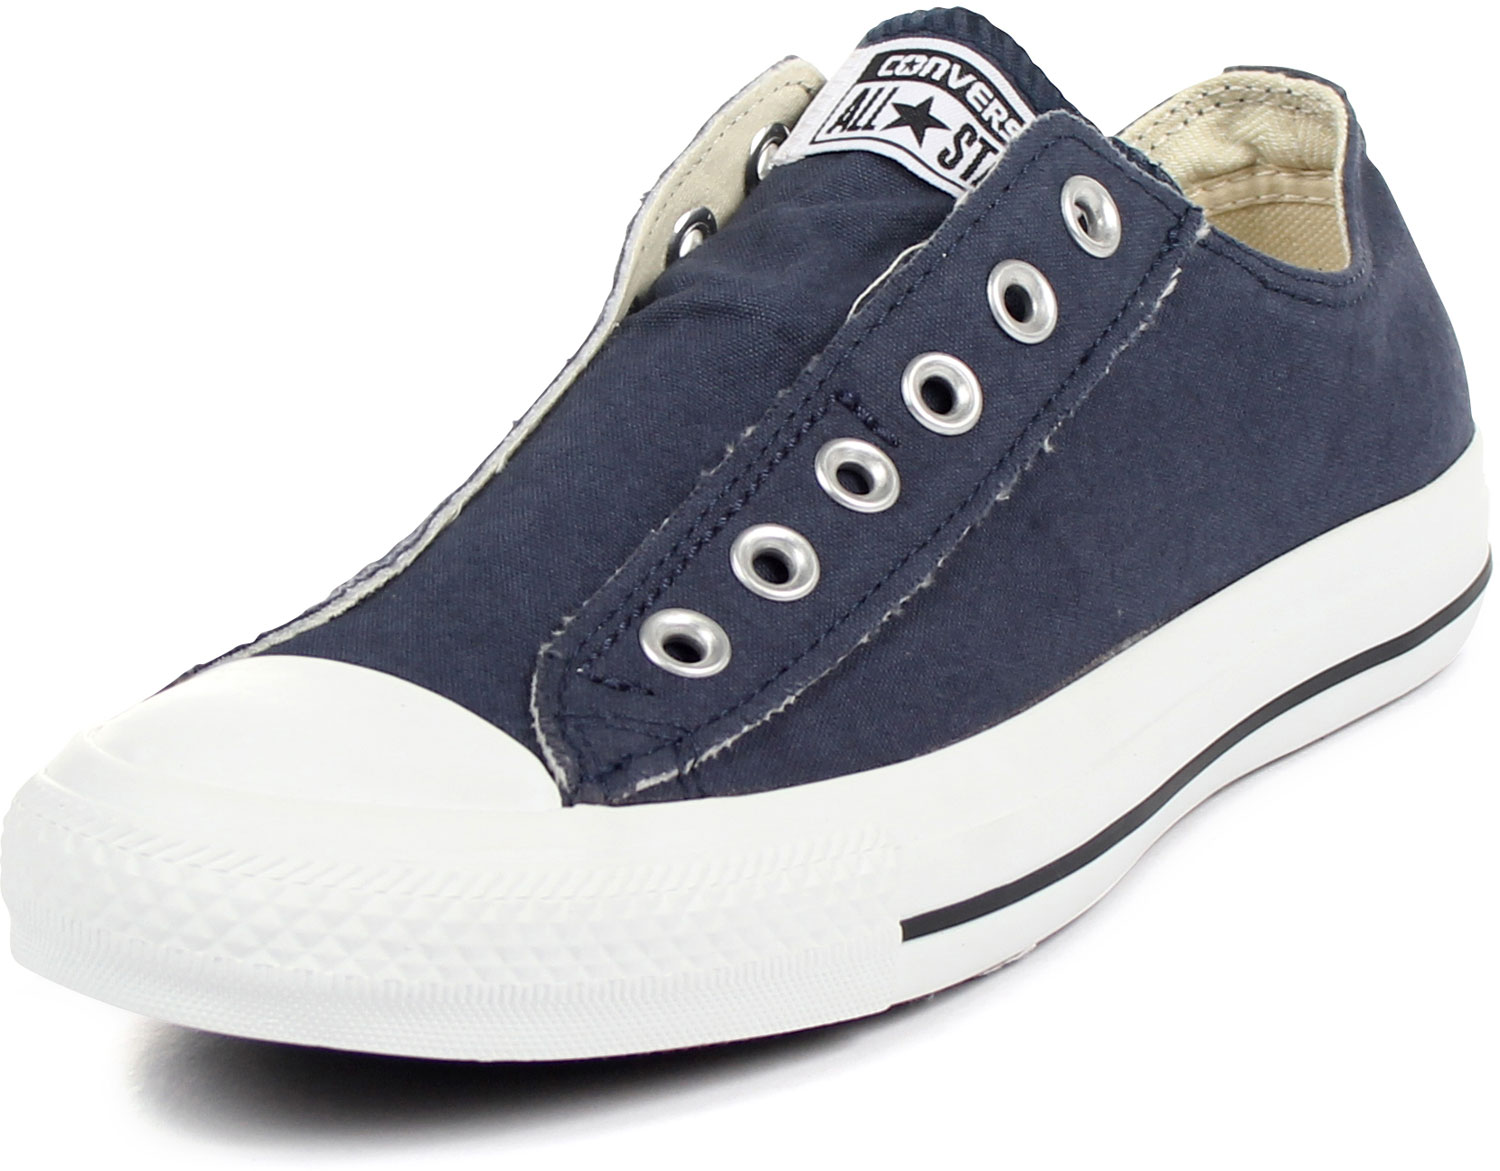 converse chuck taylor slip on shoes in navy 1t156. Black Bedroom Furniture Sets. Home Design Ideas